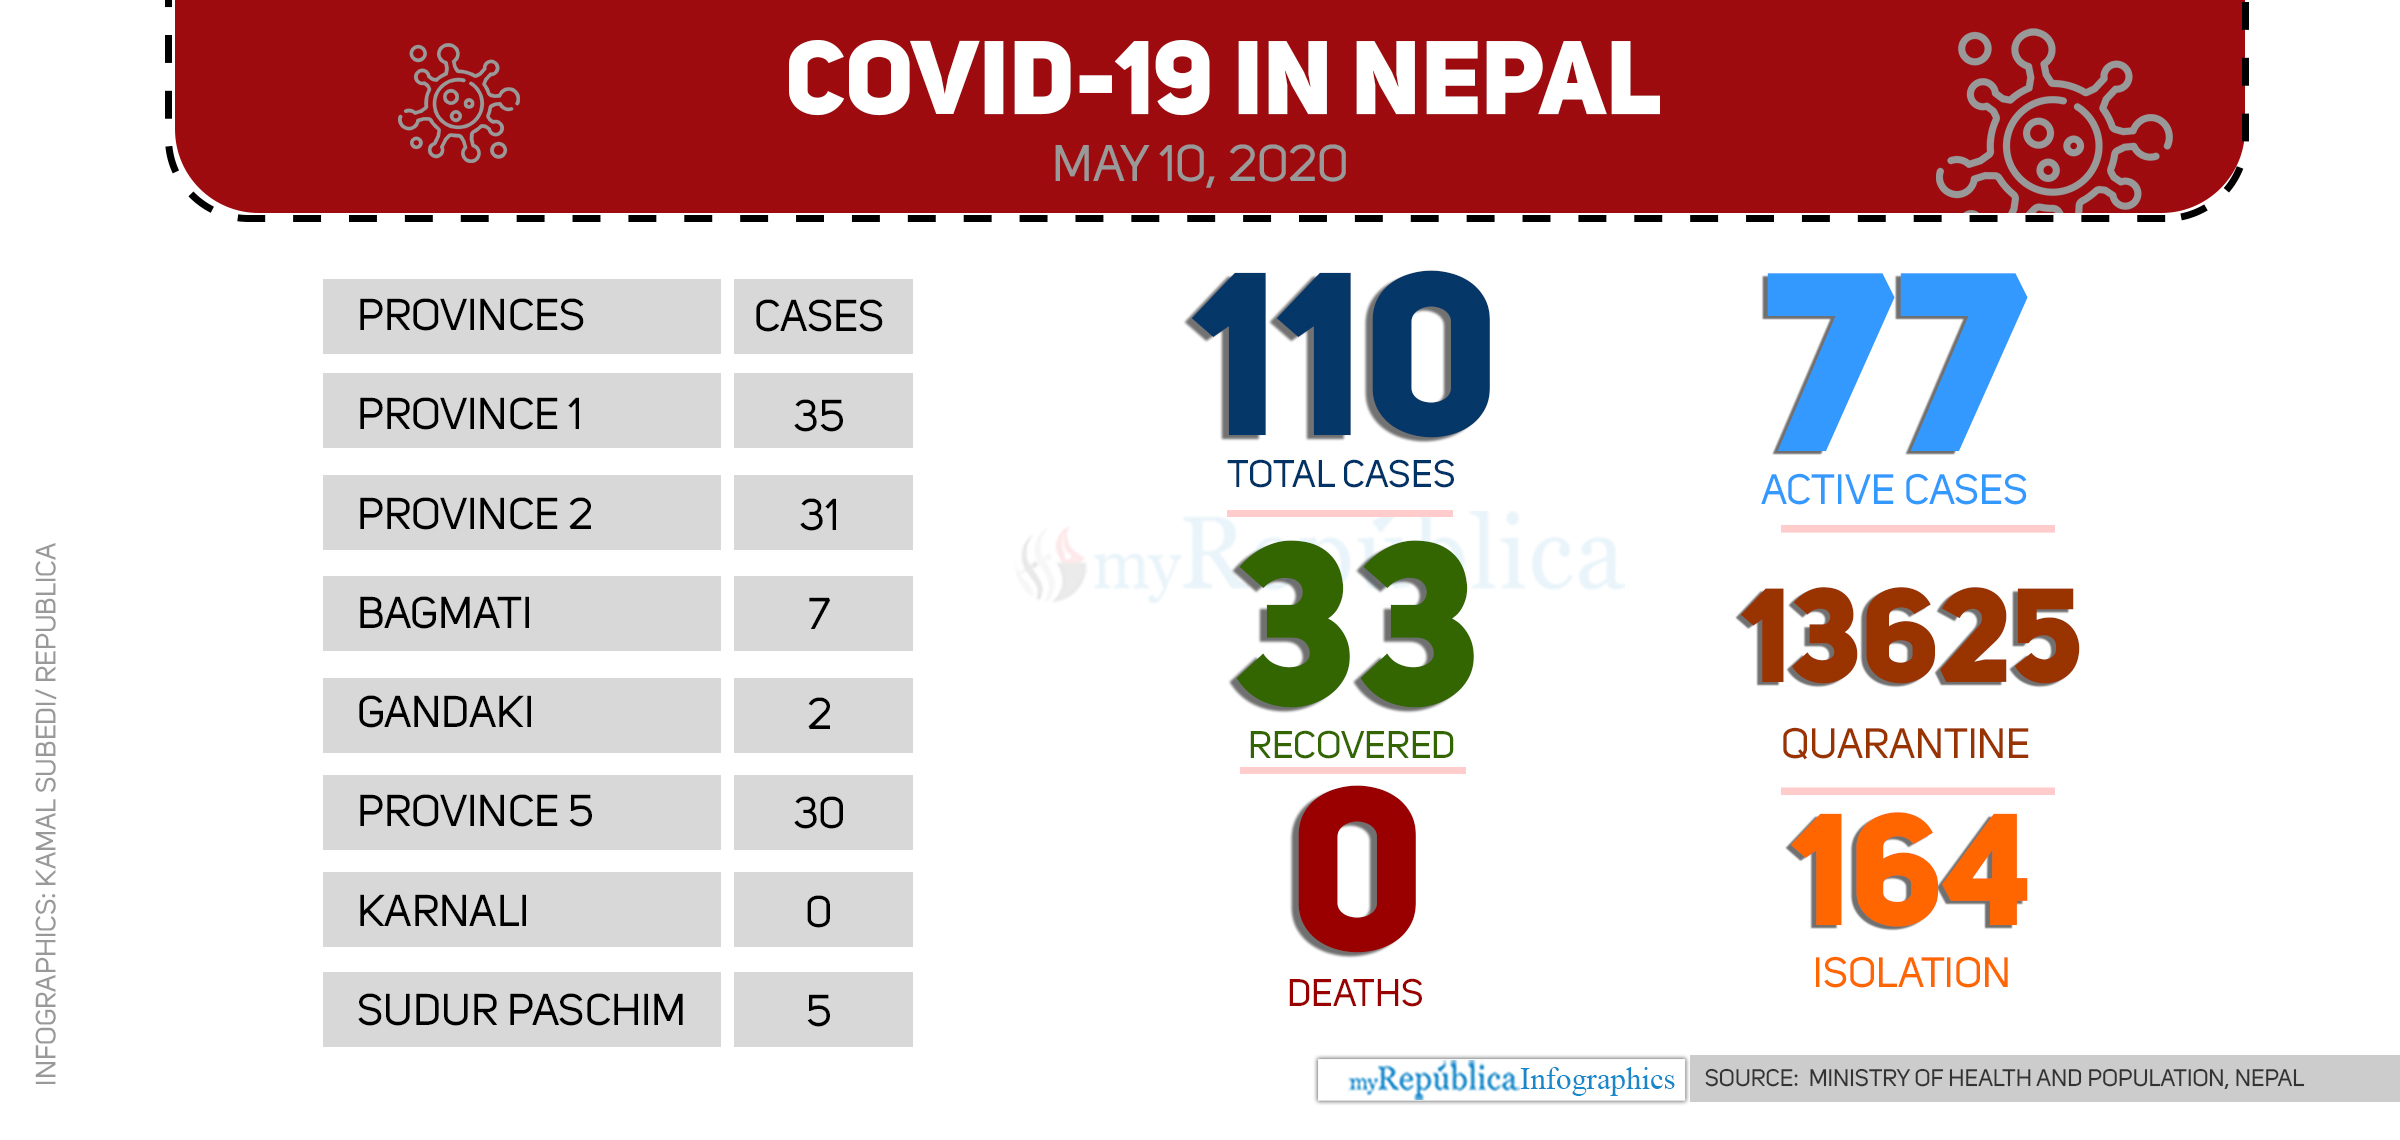 Two more COVID-19 patients discharged today, 33 recover so far